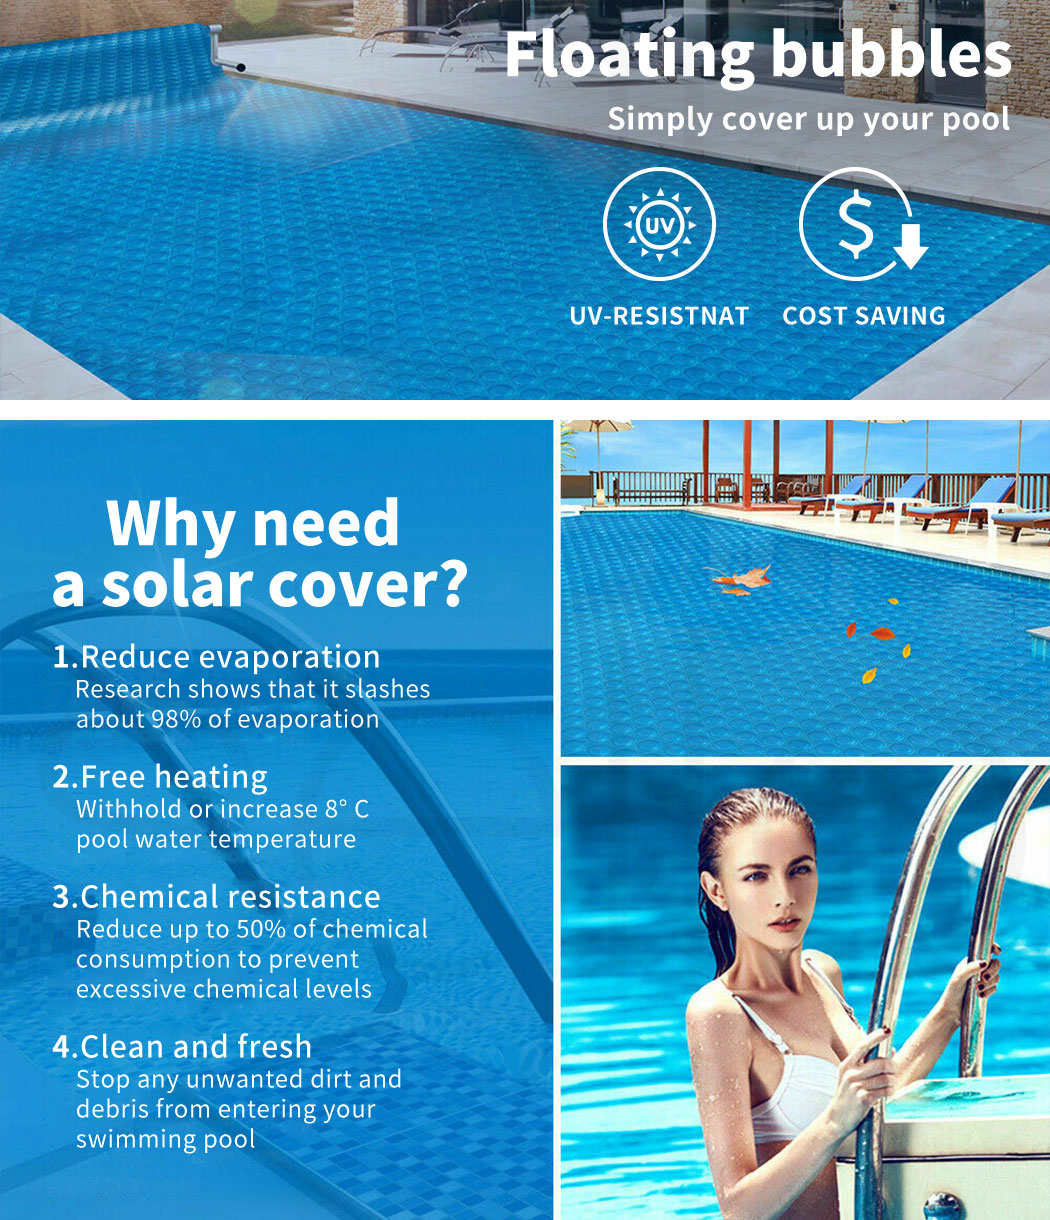 Solar-Swimming-Pool-Cover-400-500-Micron-Outdoor-Bubble-Blanket-Covers-7-Sizes thumbnail 94